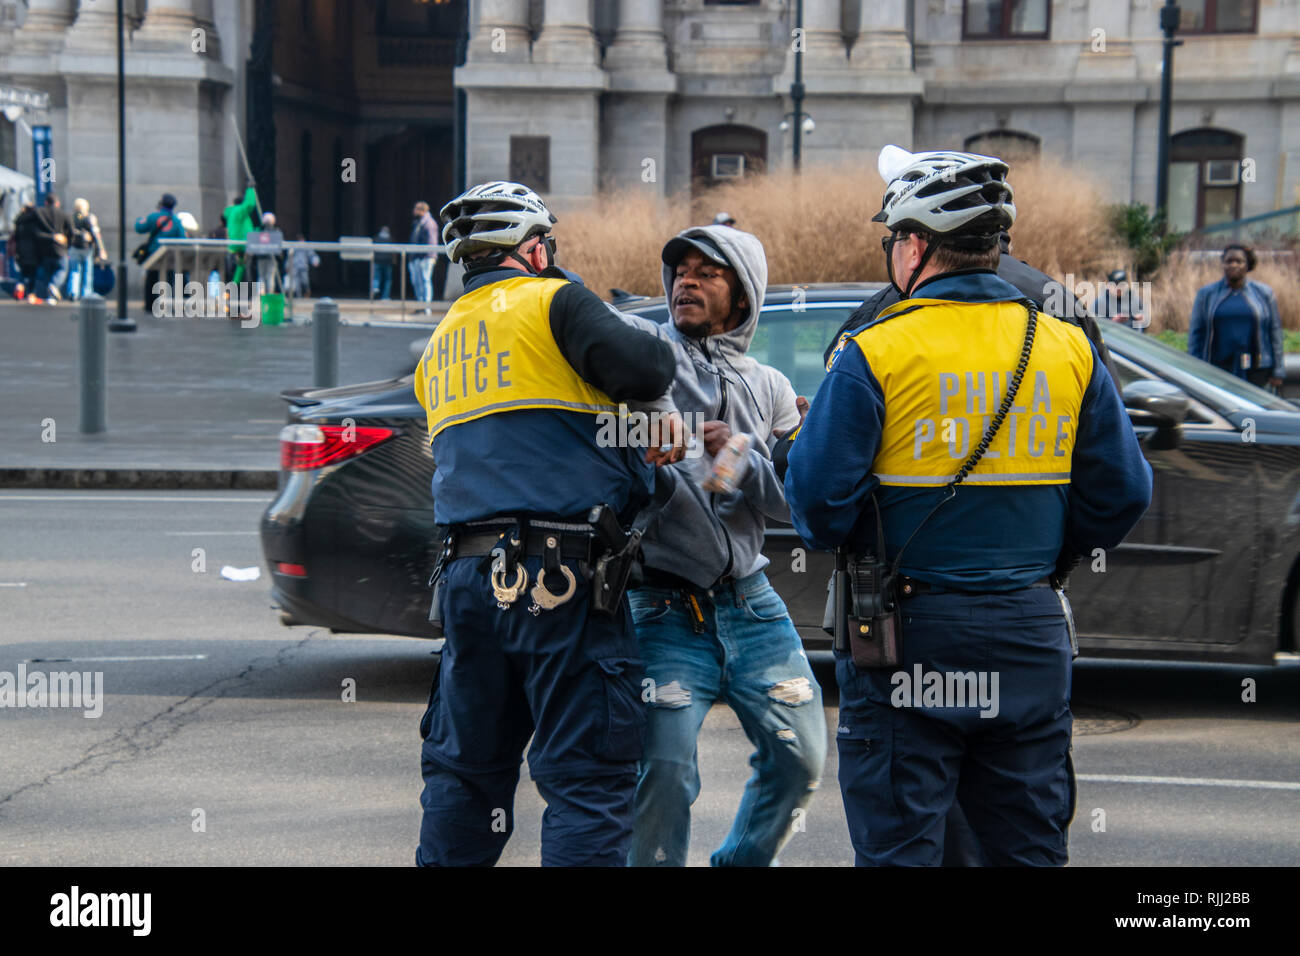 Philadelphia, Pennsylvania - February 5, 2019: Black male is seen here fighting with a Philadelphia police officer during an argument in front of city - Stock Image